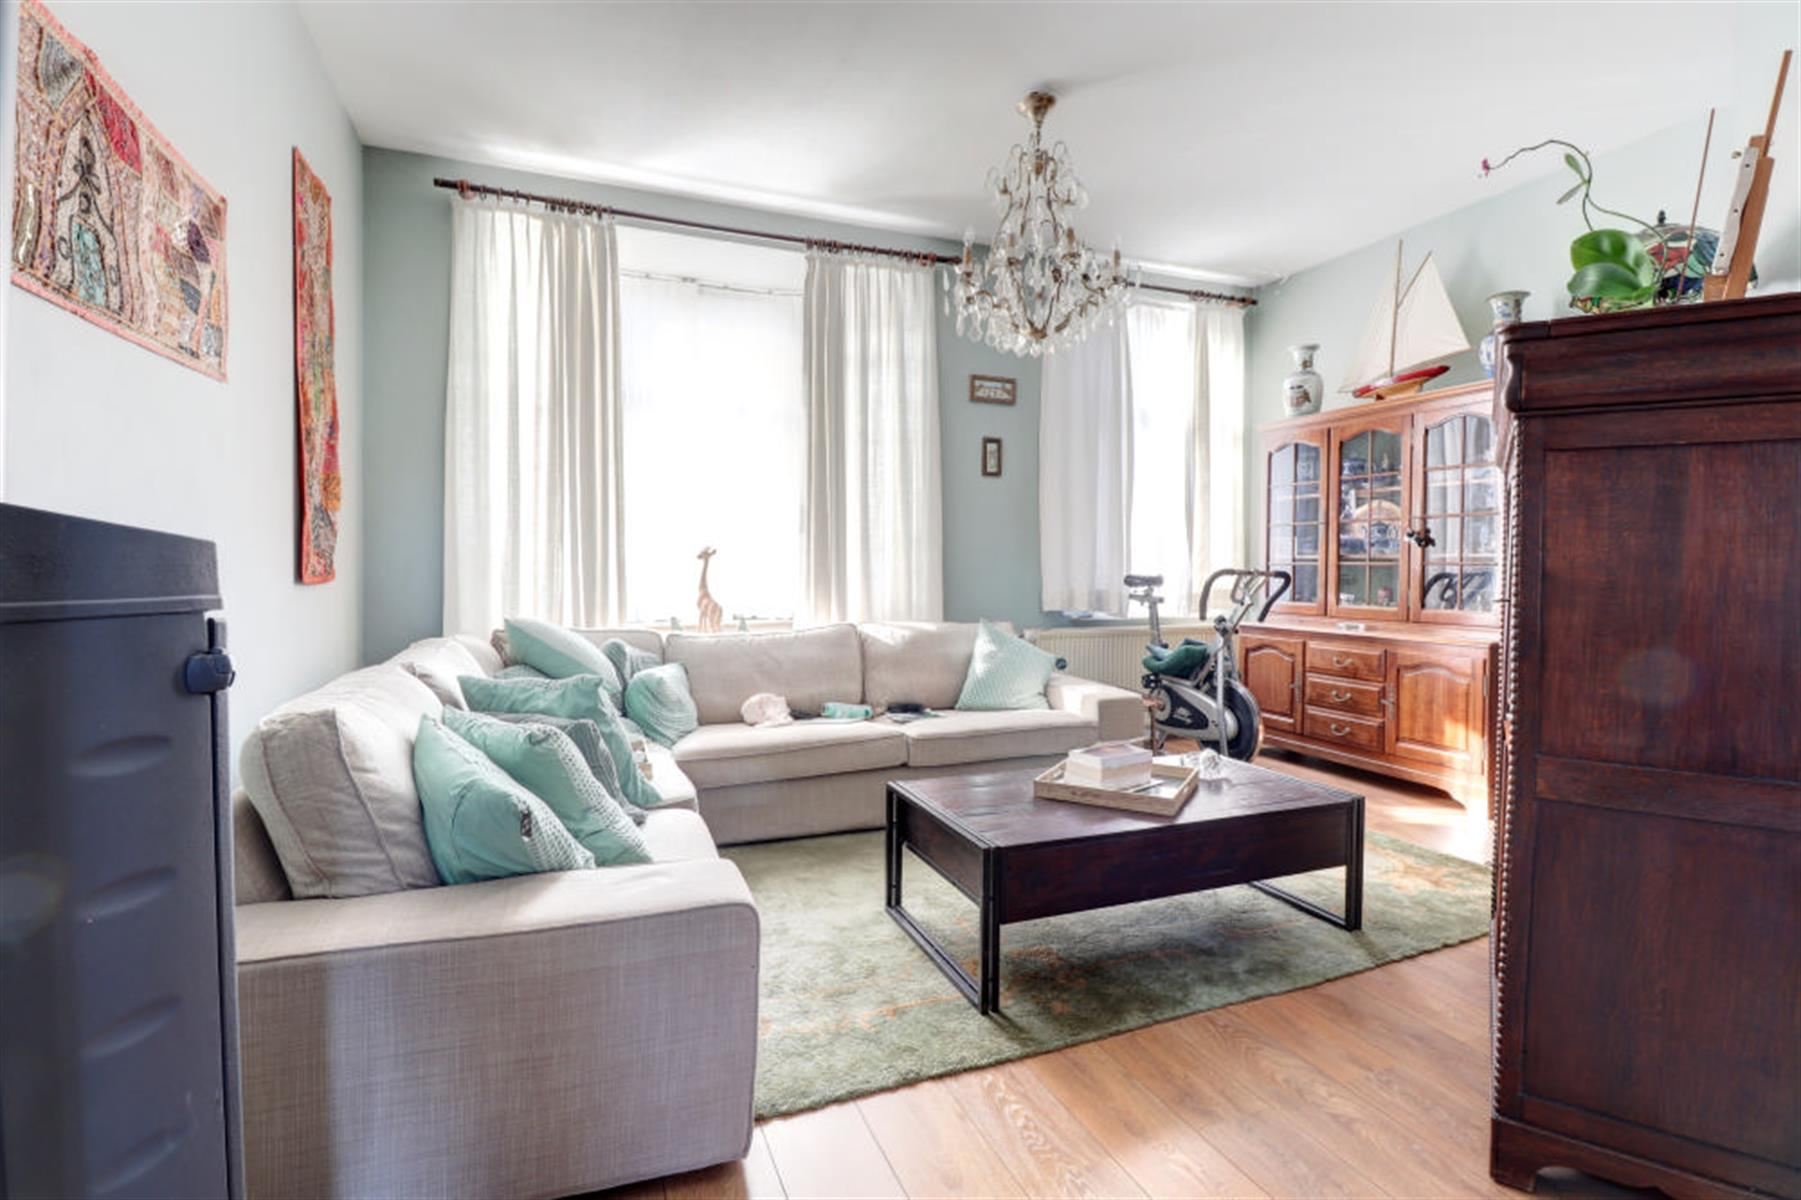 House - Uccle - #3905975-3